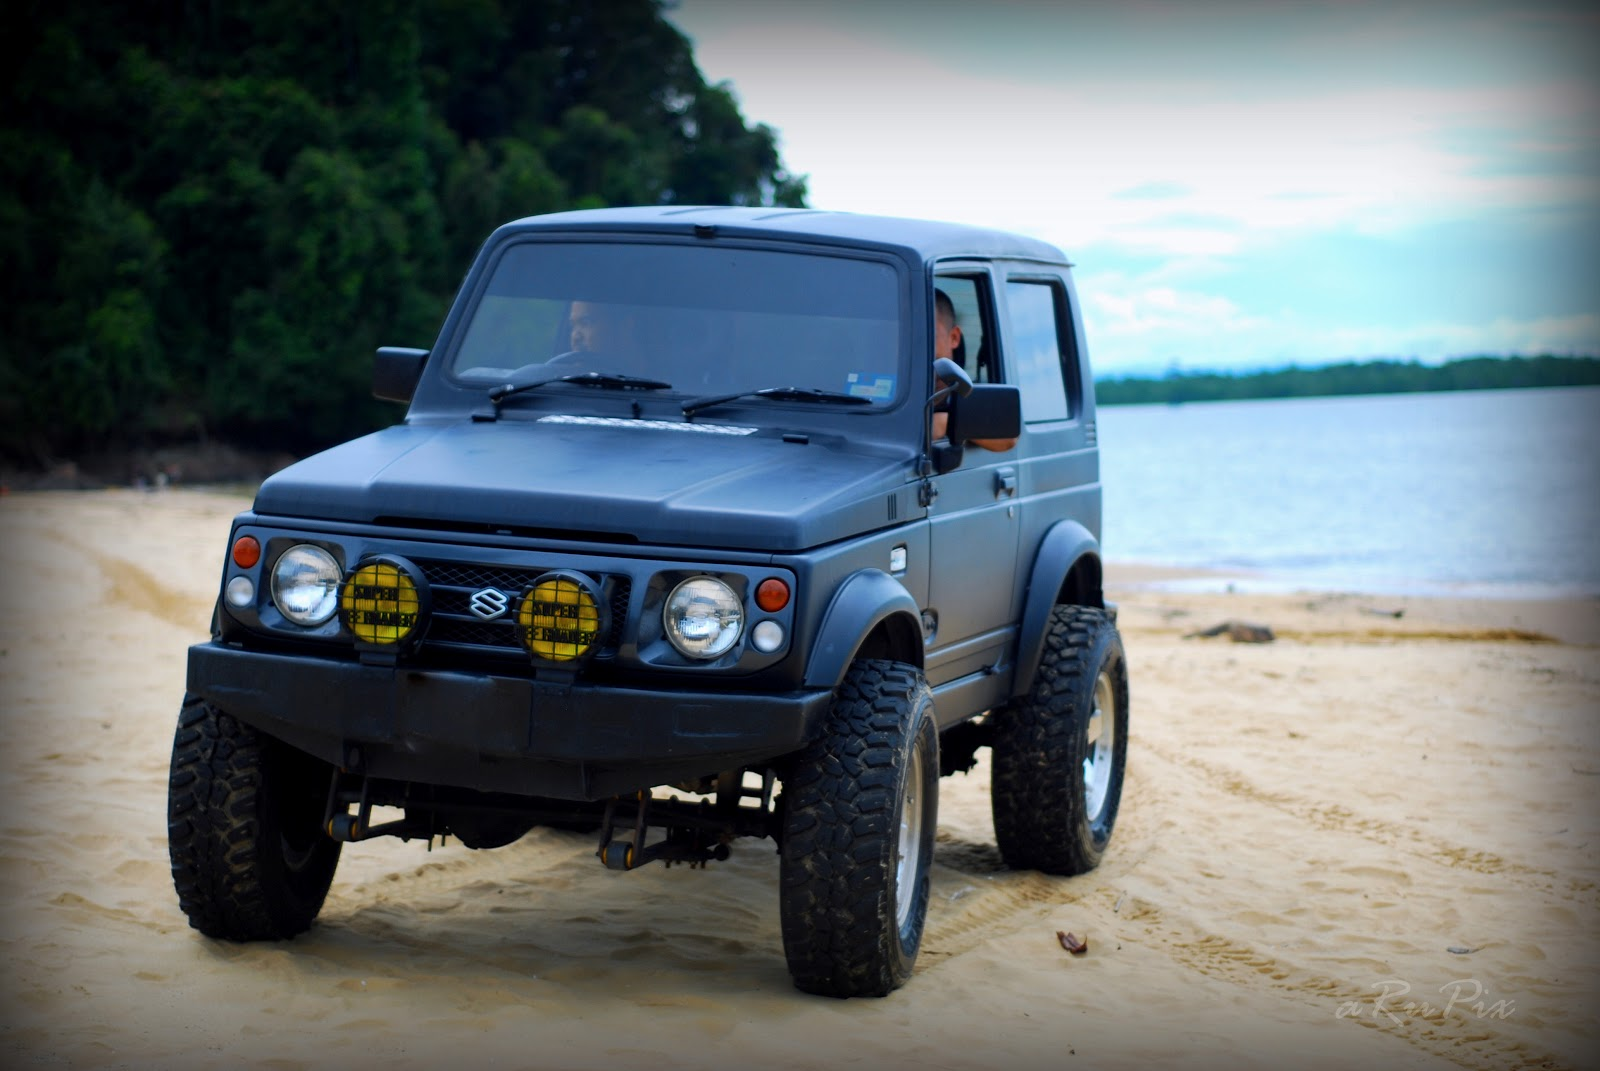 photography outing suzuki jimny off road beach show. Black Bedroom Furniture Sets. Home Design Ideas